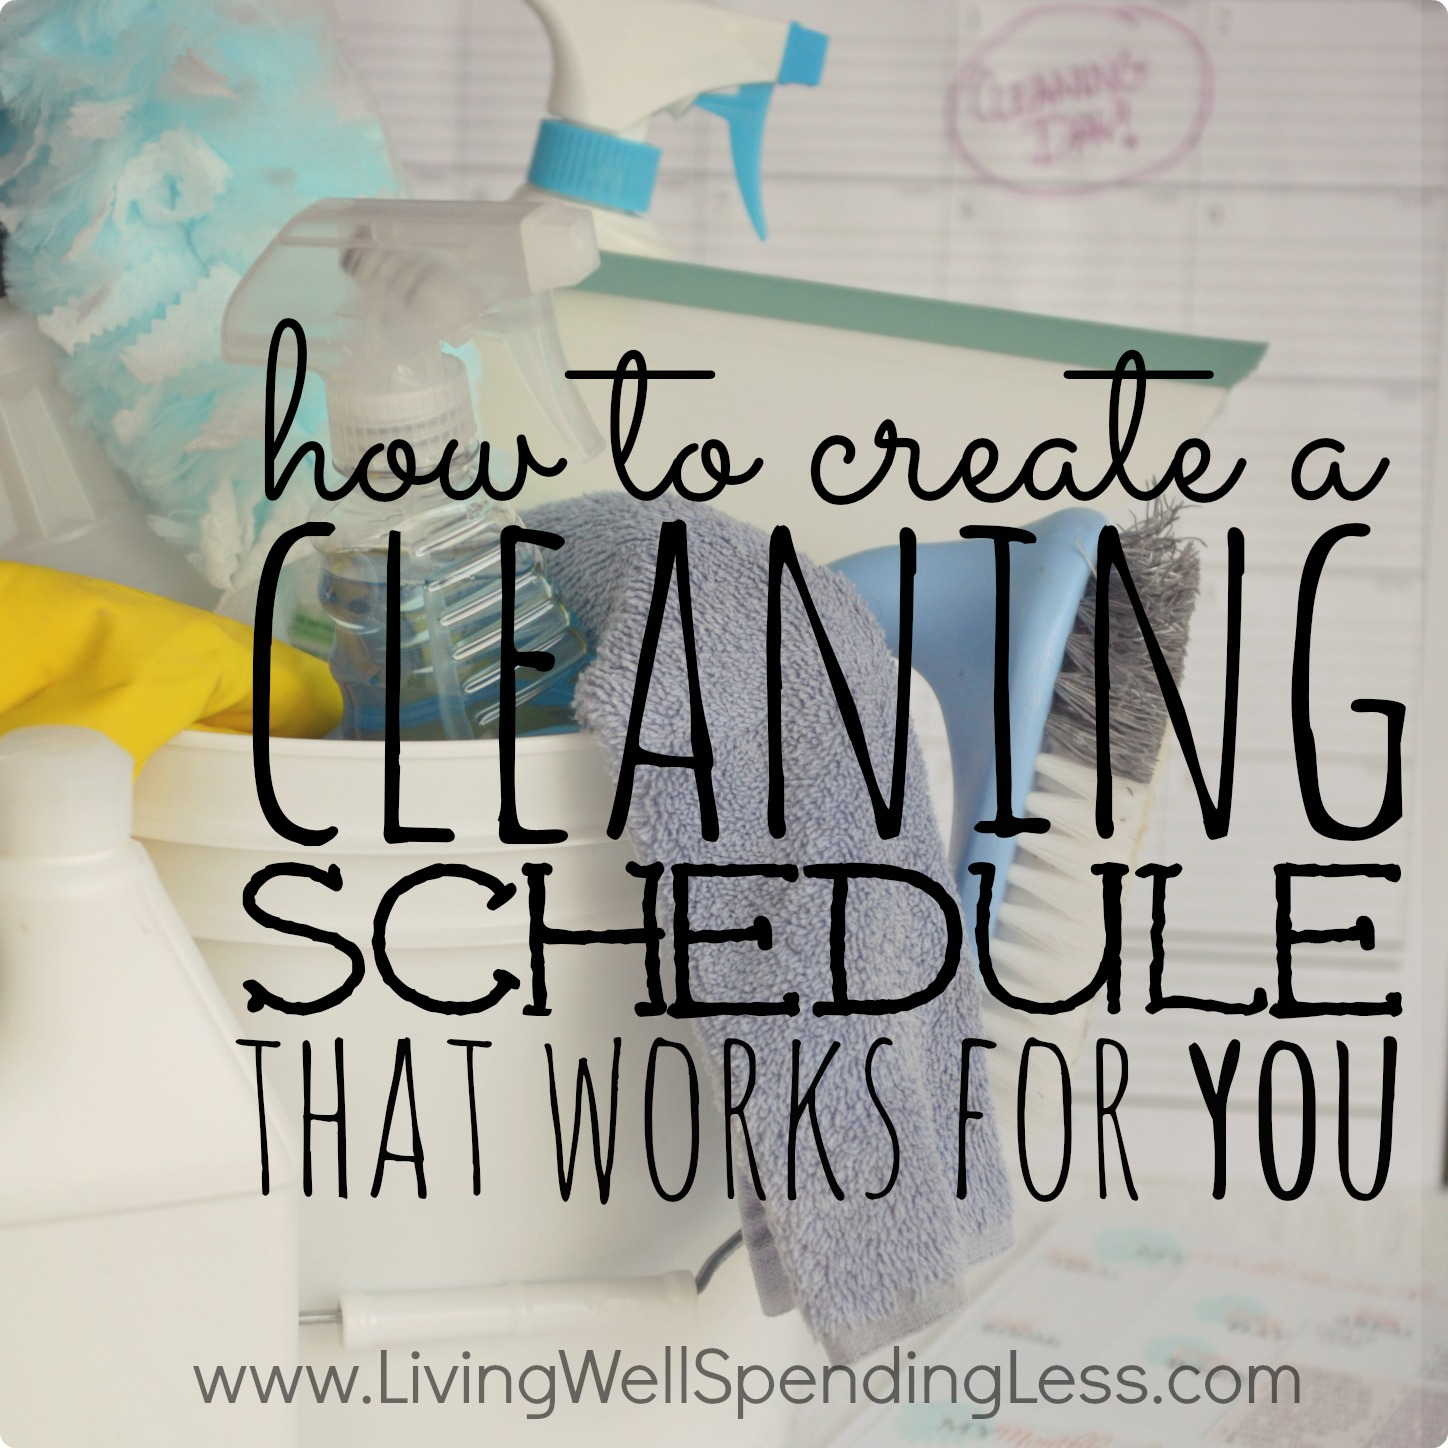 Living Well Spending Less: How To Create A Cleaning Schedule That Works For You